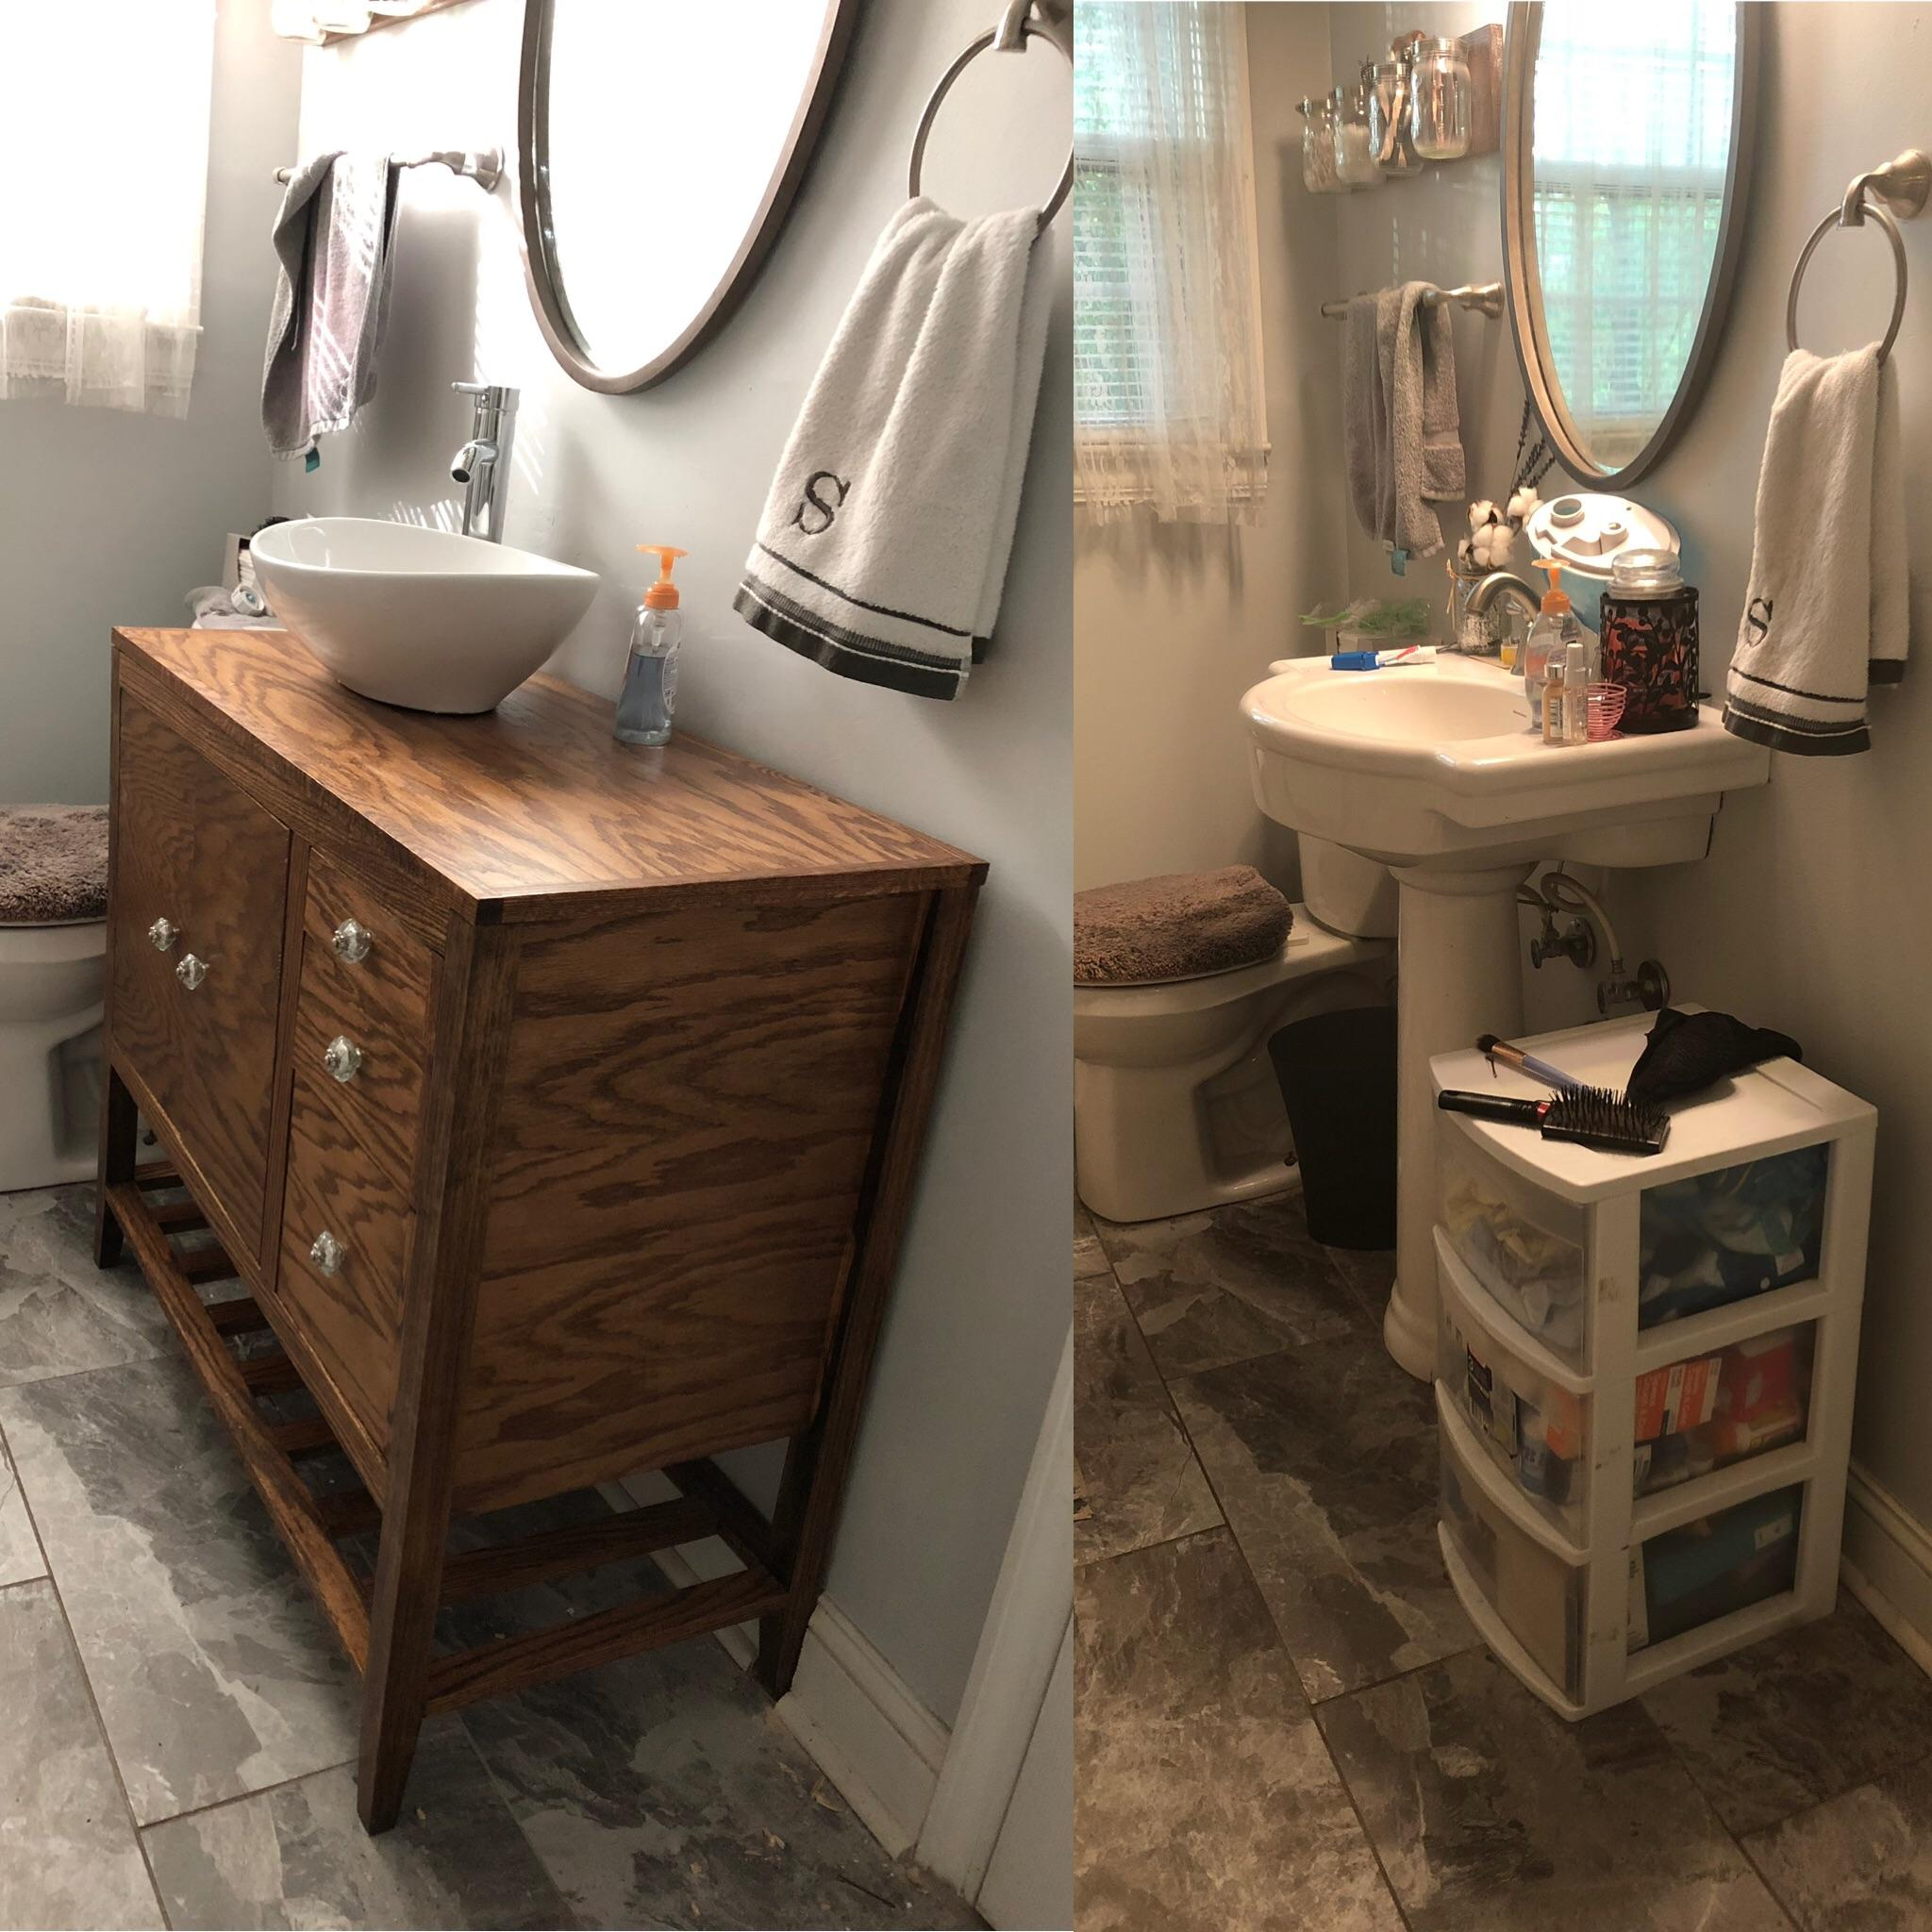 vanity to replace our pedestal sink so